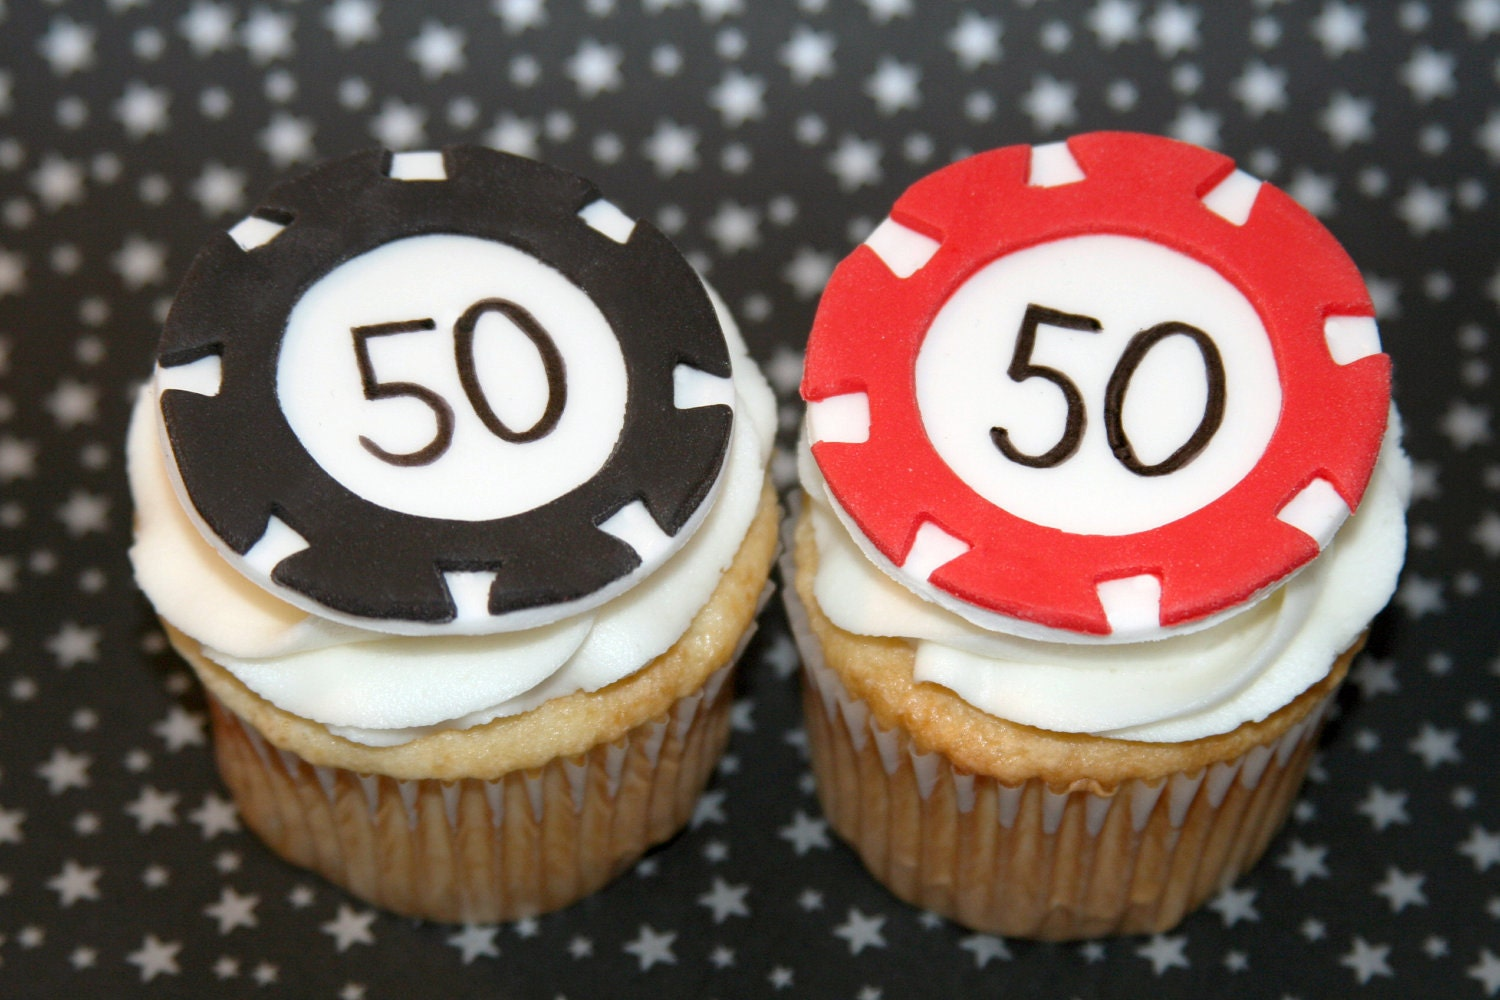 Casino chip cups and play casino games